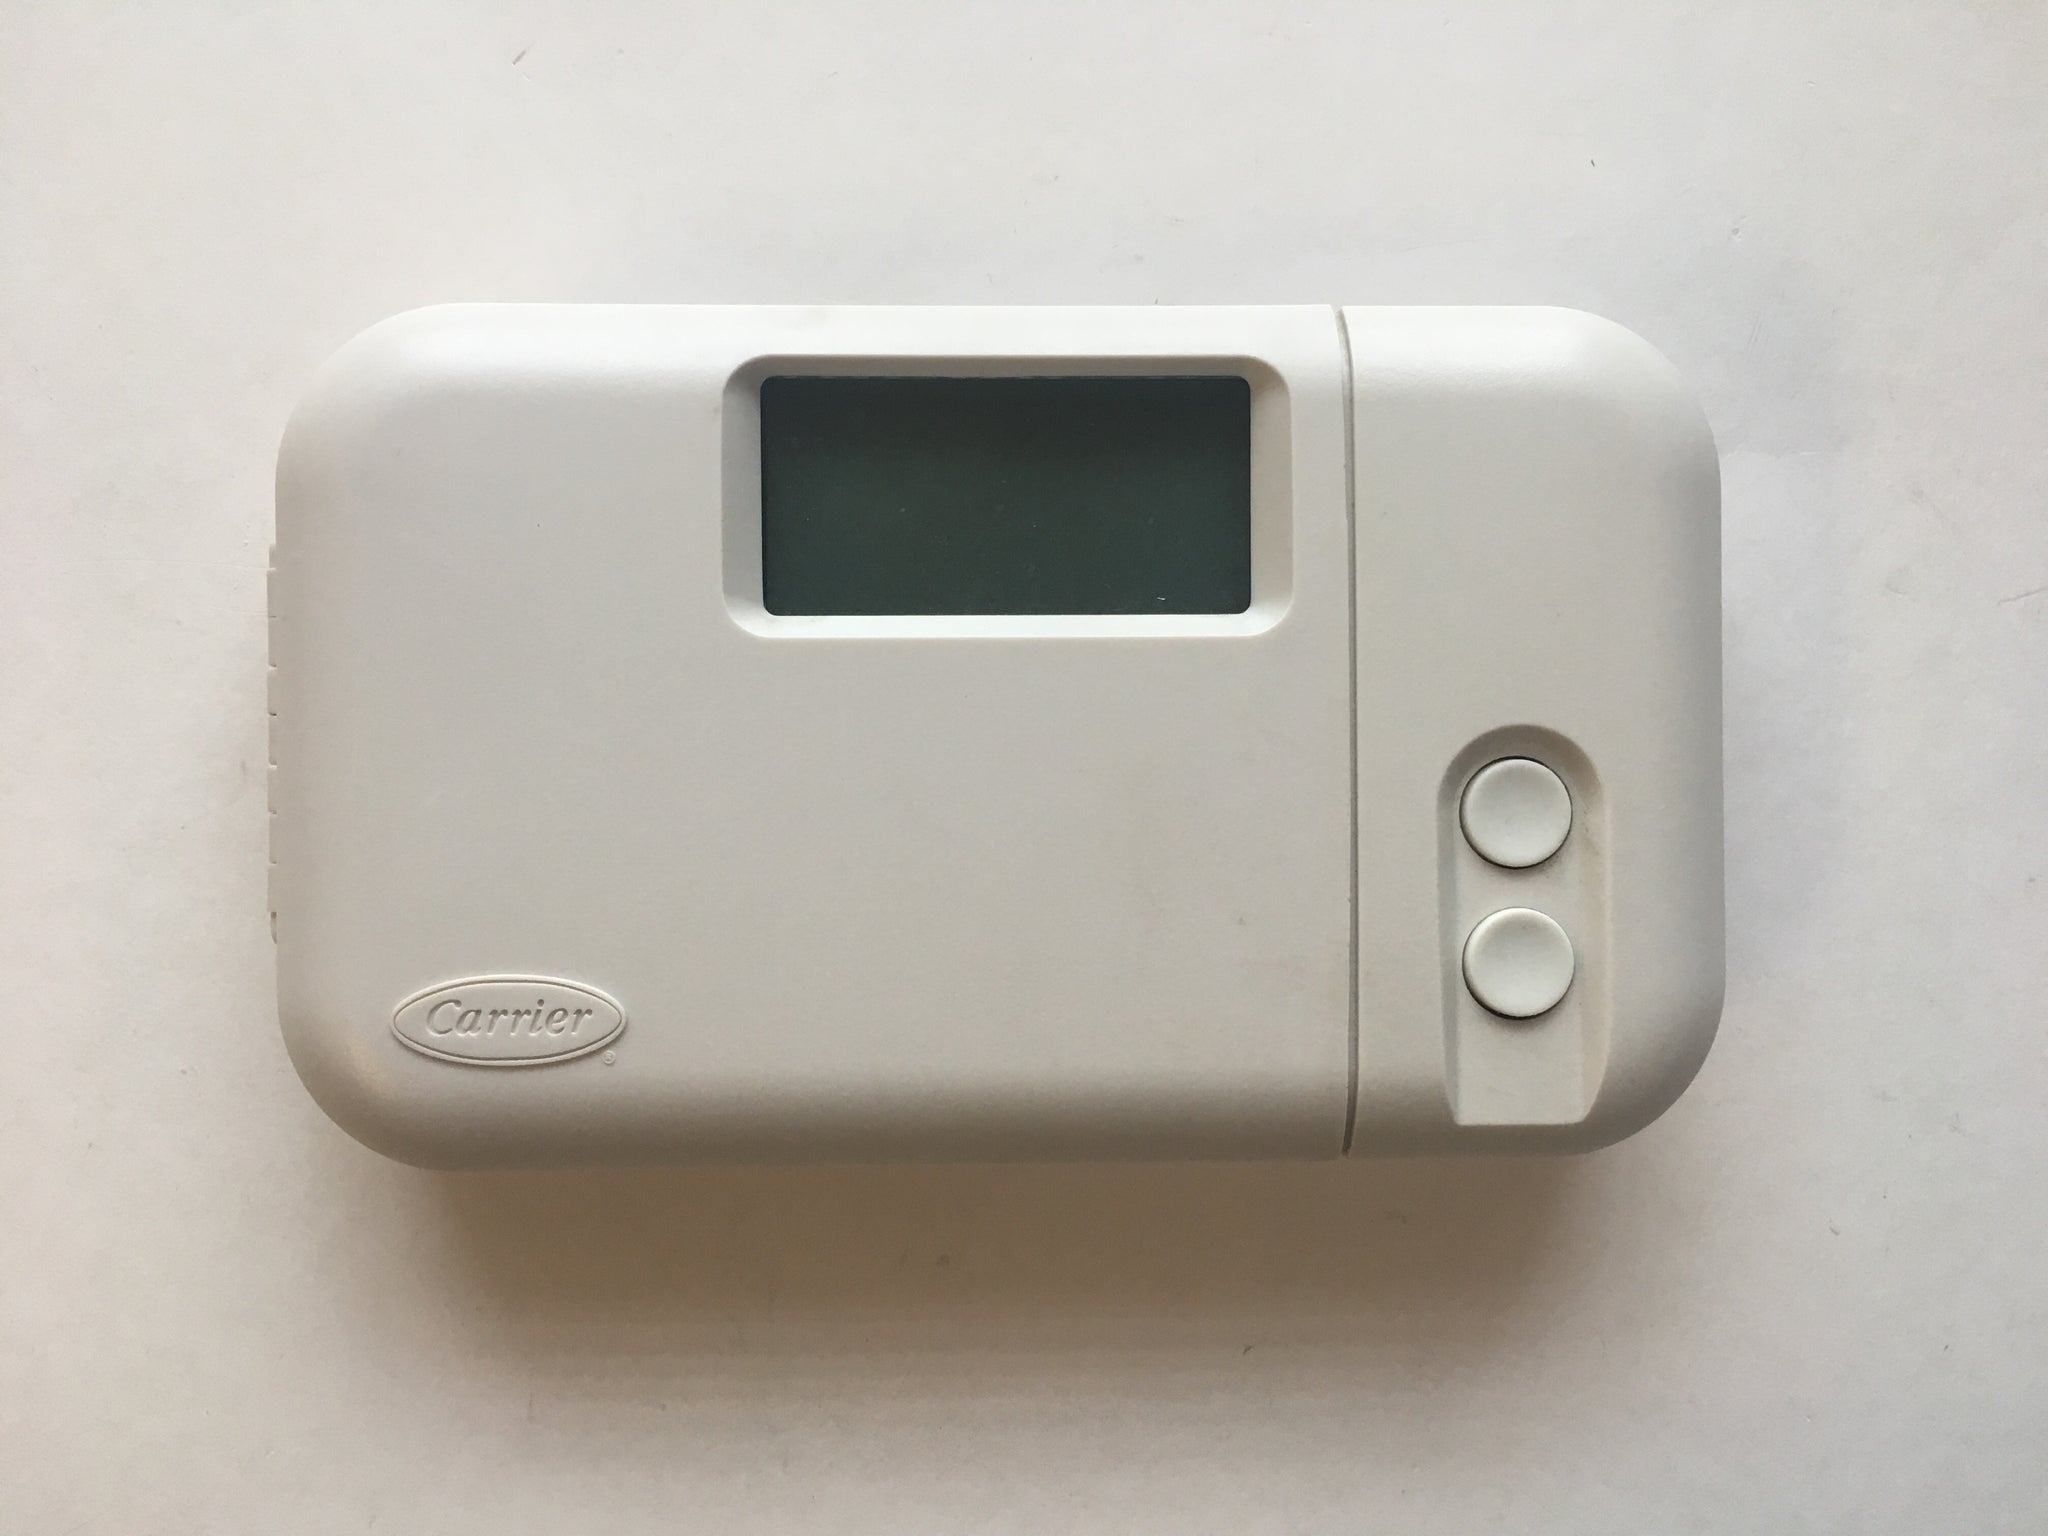 Carrier ZONECC0USISA-B Comfort Zone II User Interface Thermostat